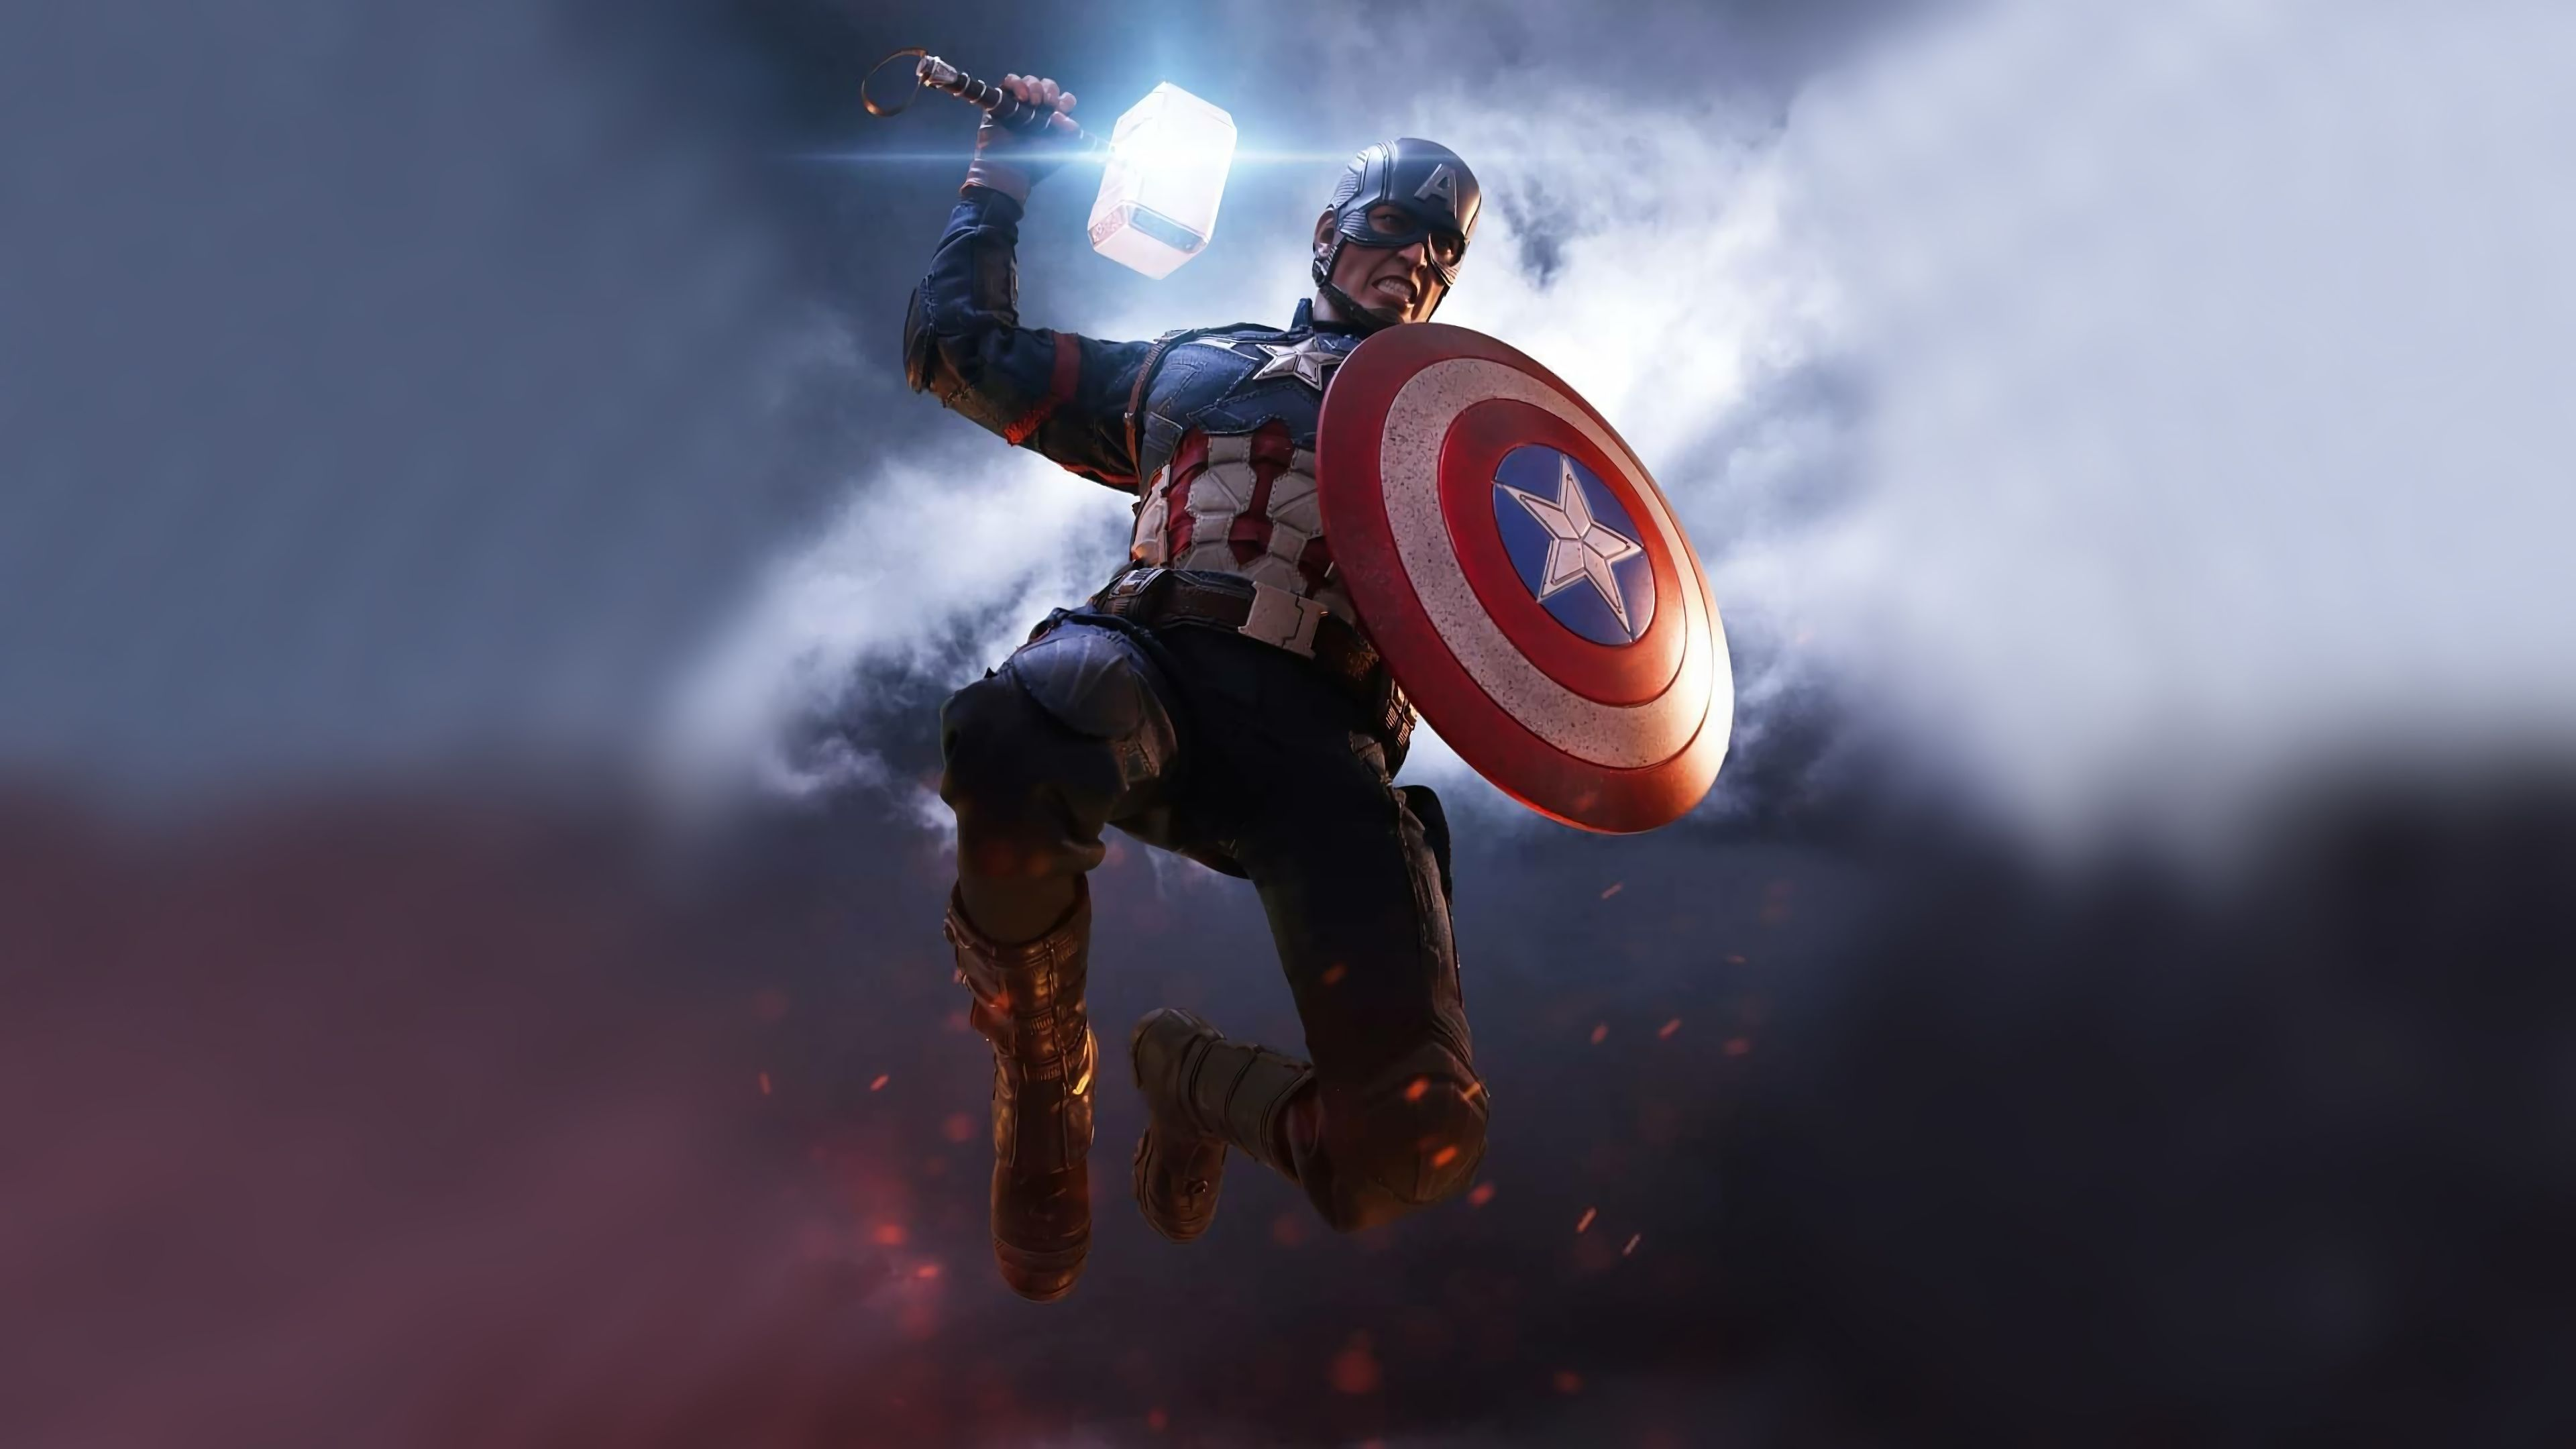 Captain America Mjolnir Artwork Superheroes Wallpapers Hd Wallpapers Captain America Wallpapers Artwork Wa In 2020 Captain America Wallpaper Captain America Captain